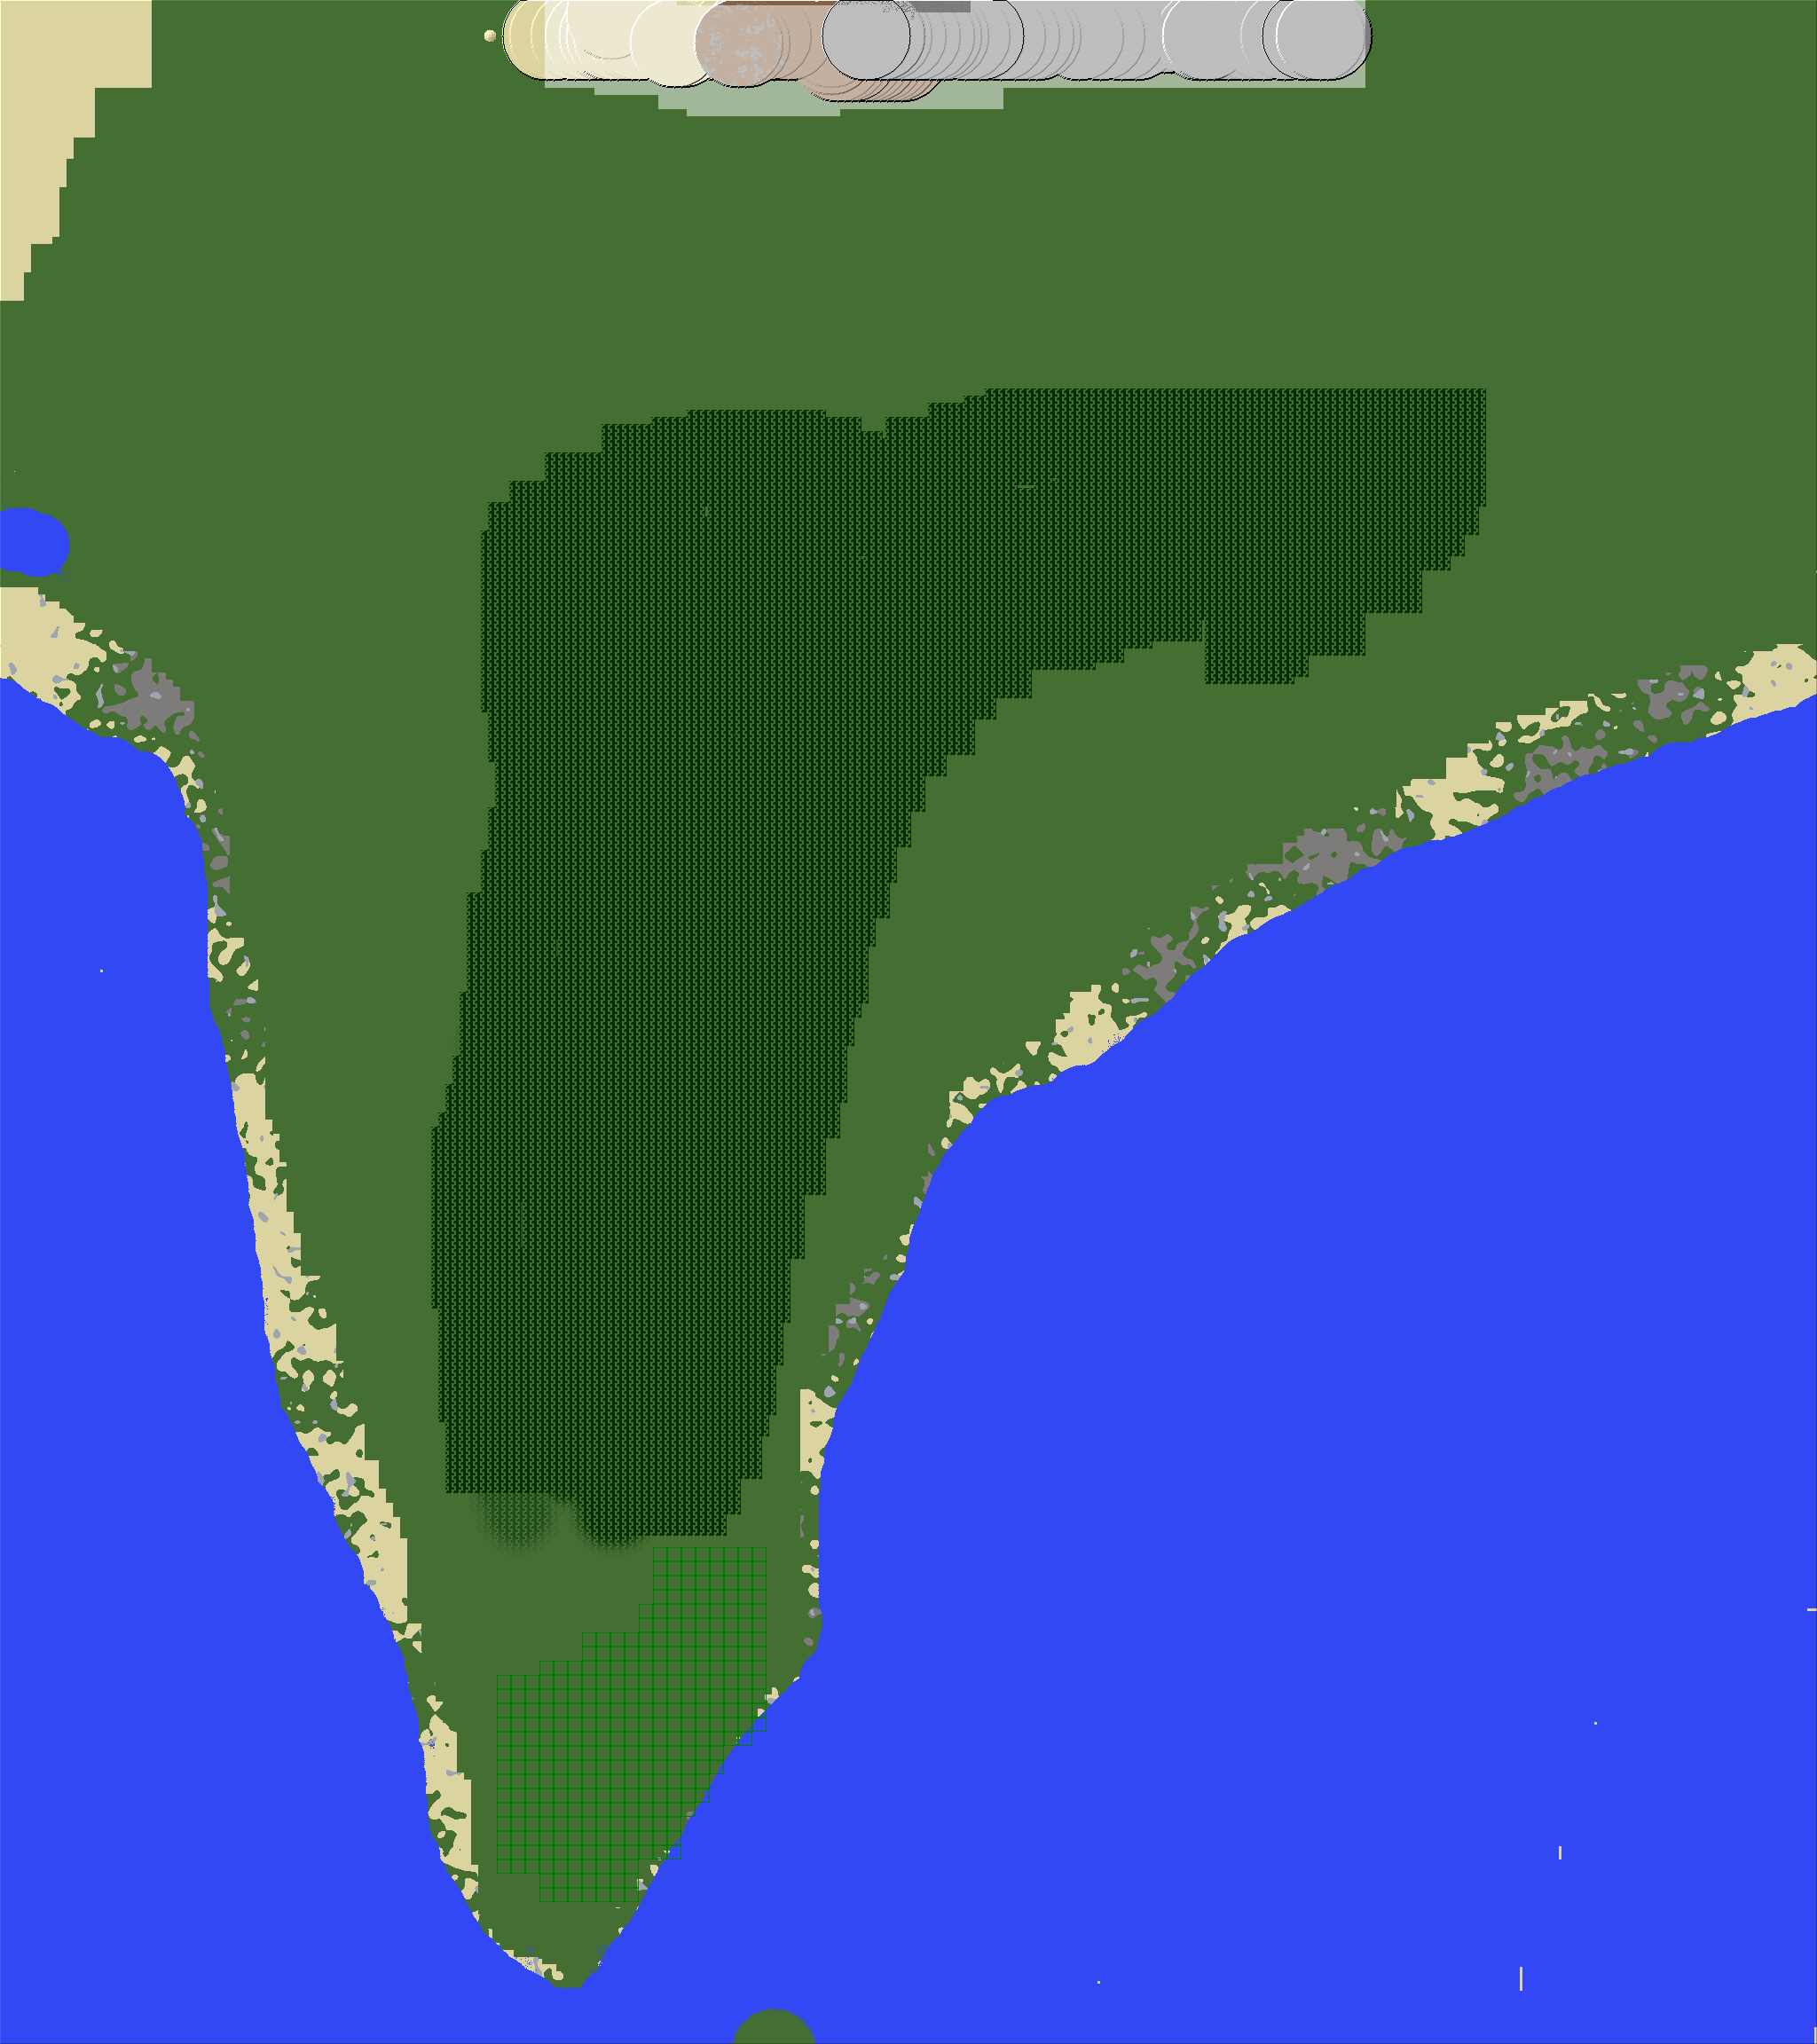 The Raja Of Hinudstan - Map of India on Minecraft! - Maps